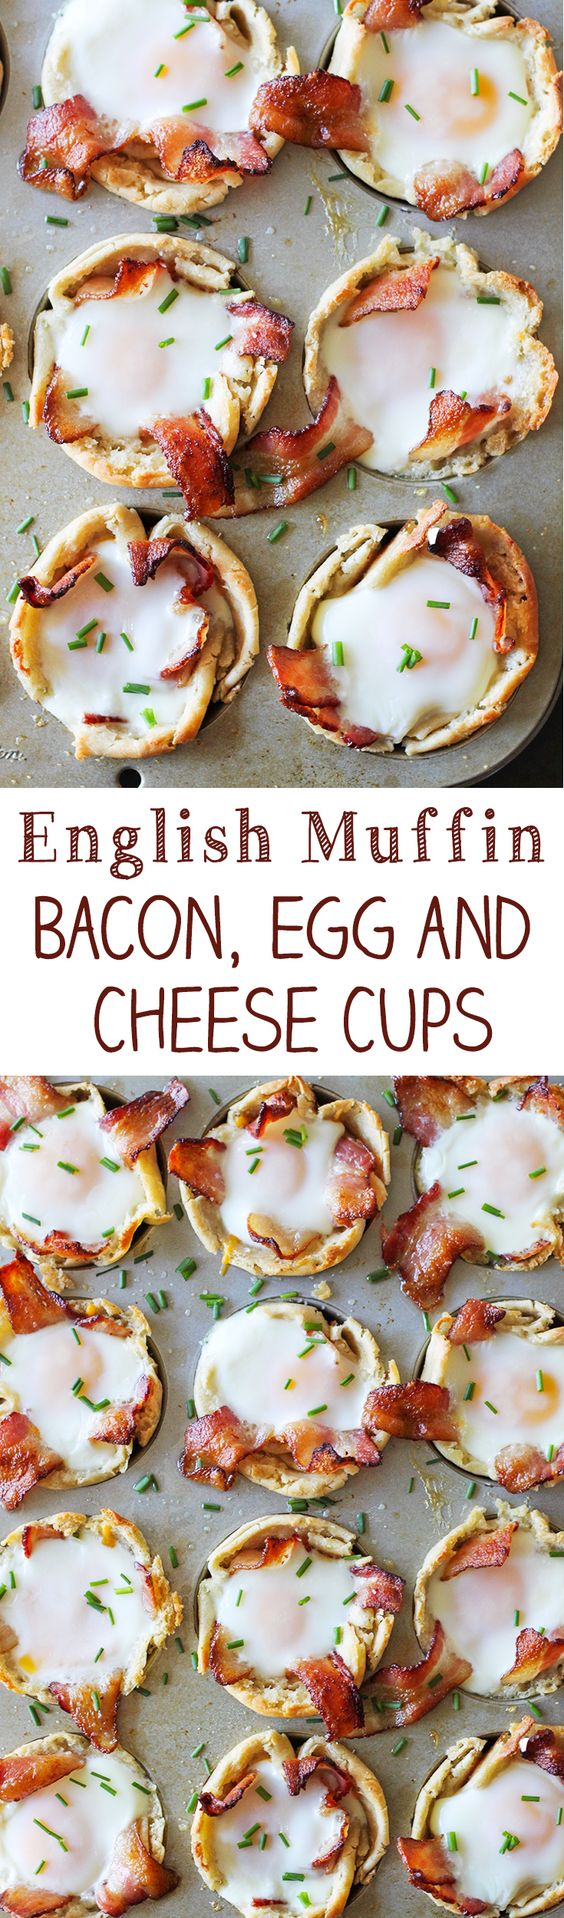 English Muffin Bacon, Eggs and Cheese Cups: a little bacon and the Nooks and Crannies perfection of Thomas' English Muffins, this recipe from Number 2 Pencil hits the spot.